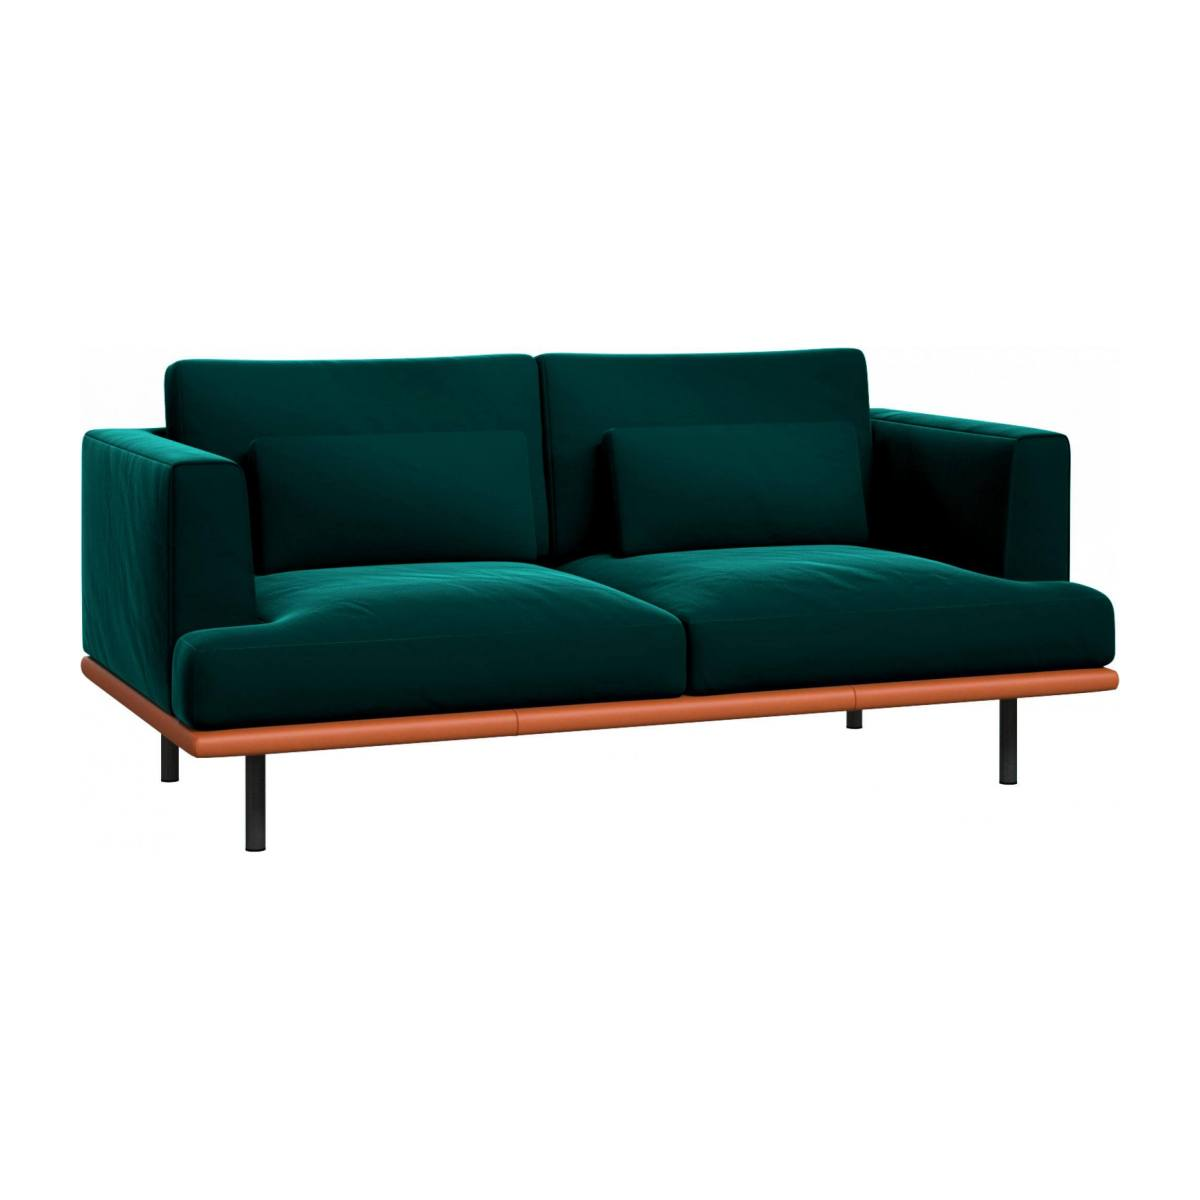 2 seater sofa in Super Velvet fabric, petrol blue with base in brown leather n°1